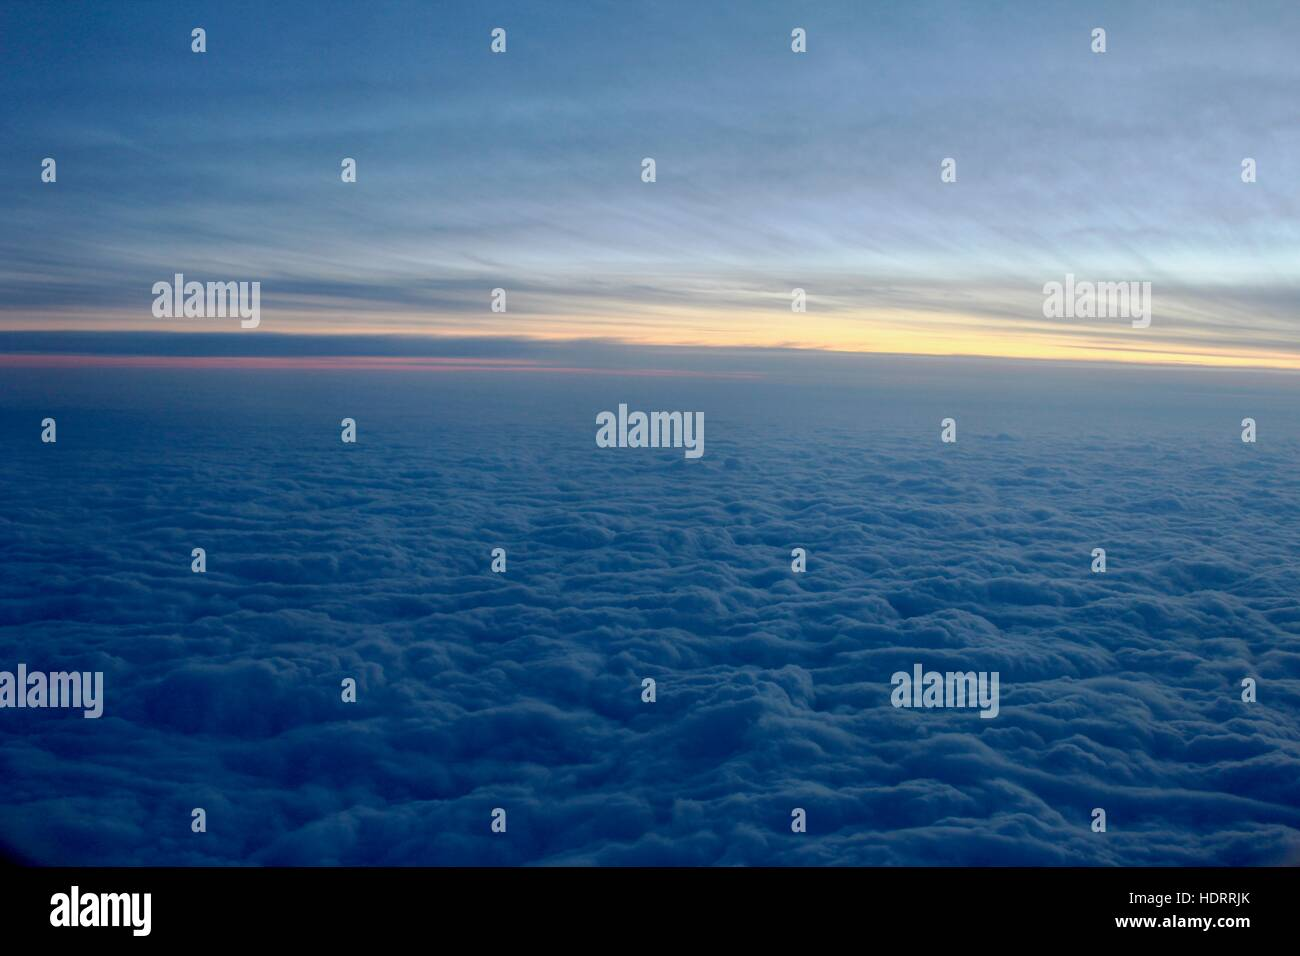 The view from outside the airplane window above clouds during winter and sunset. - Stock Image